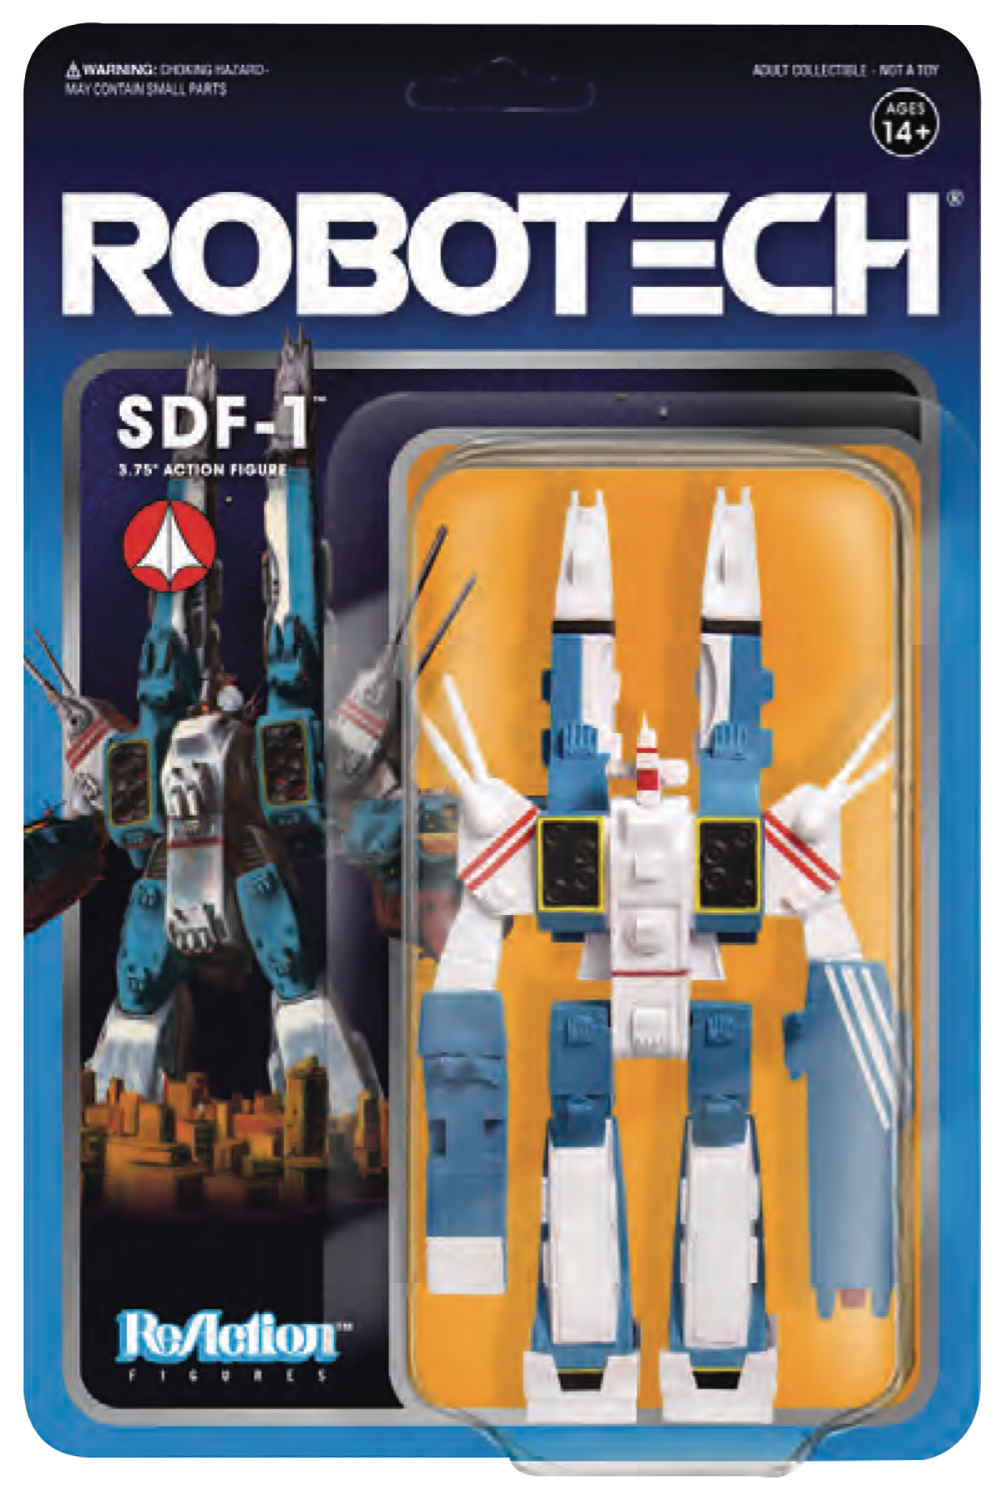 ROBOTECH 3.75IN REACTION FIG WV 1 SDF-1